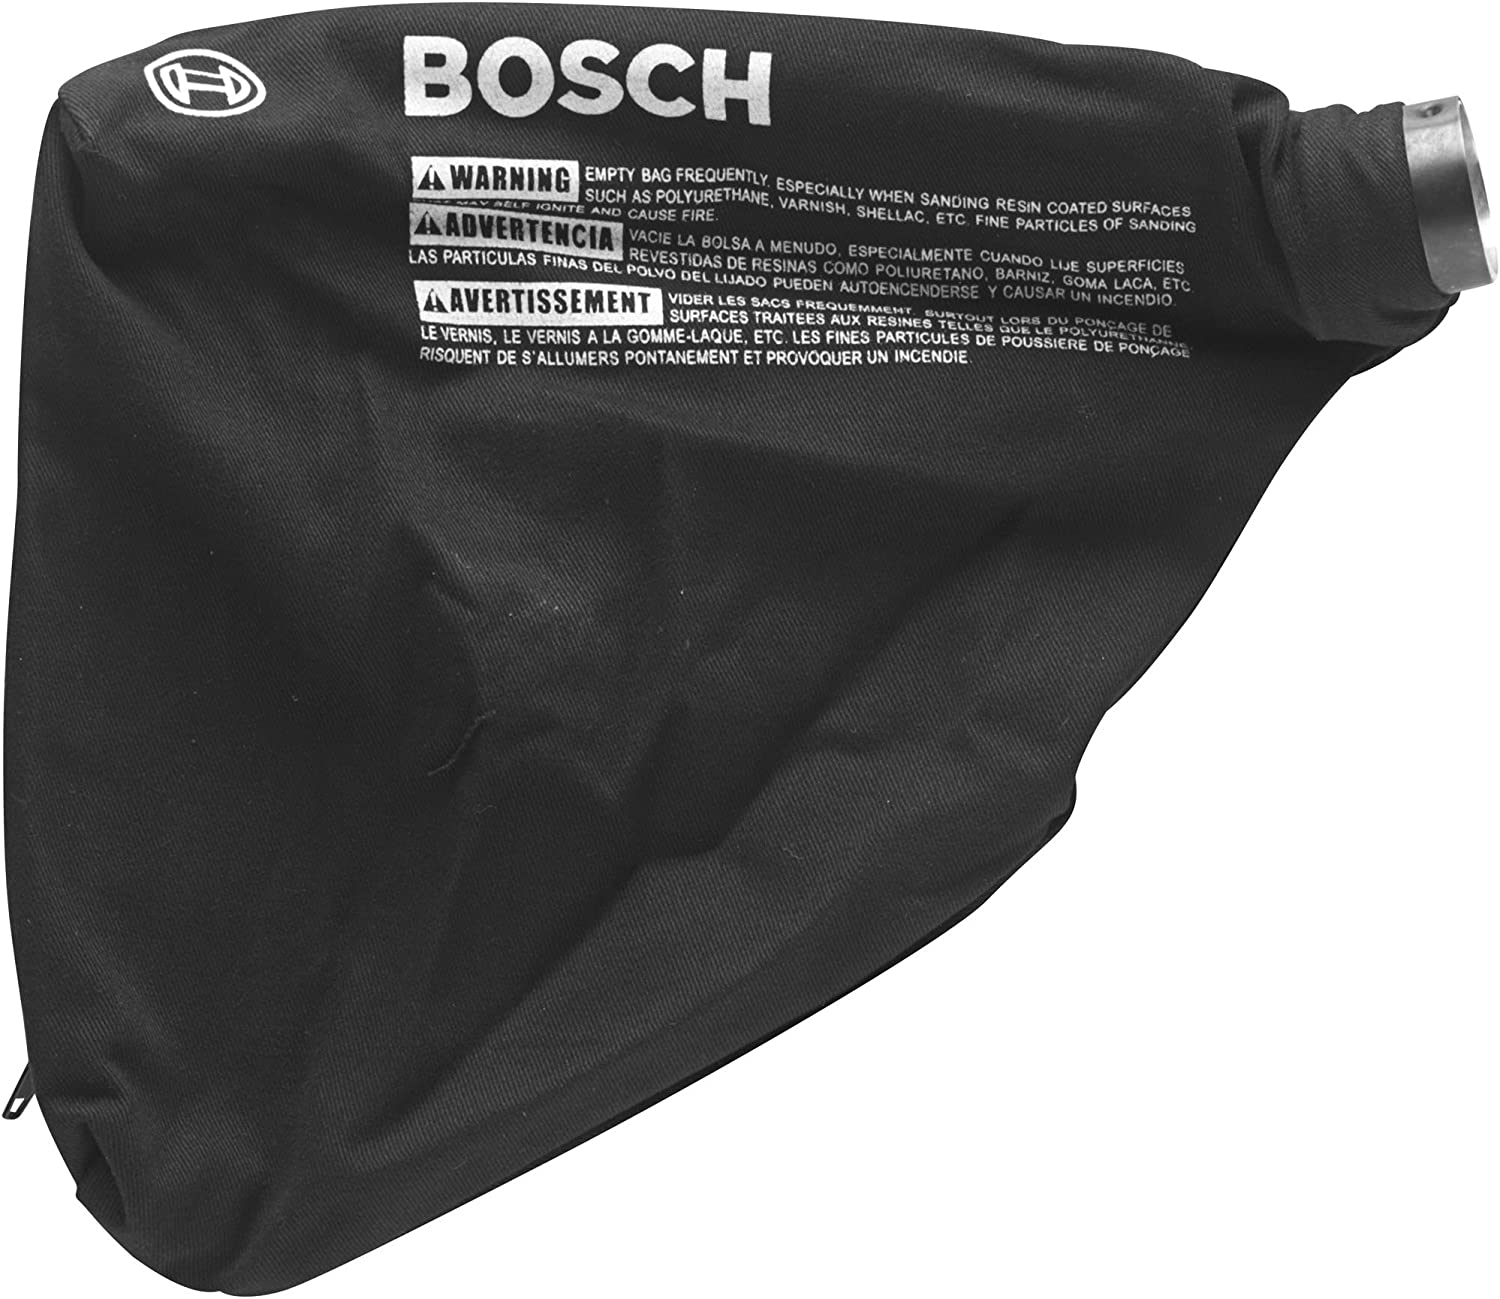 Bosch SA1050 Dust Bag Assembly for 4x24 and 3x24 Belt Sanders